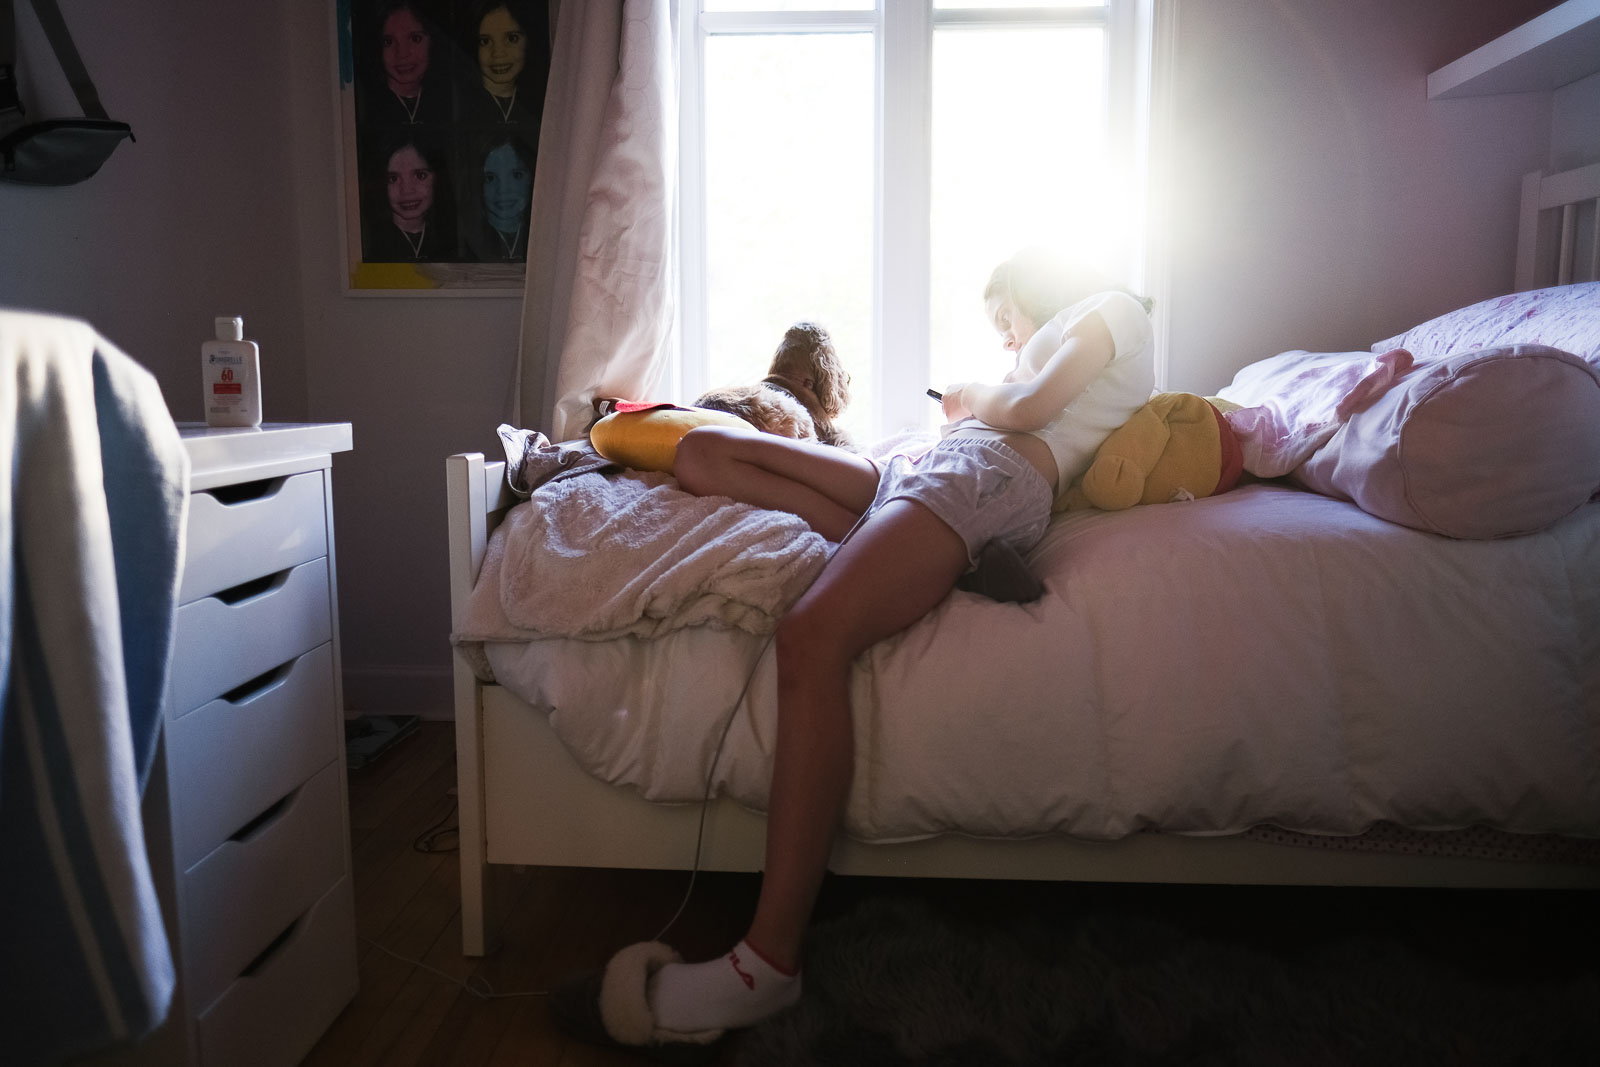 Girl texting on a bed in strong light: how to build a photography portfolio